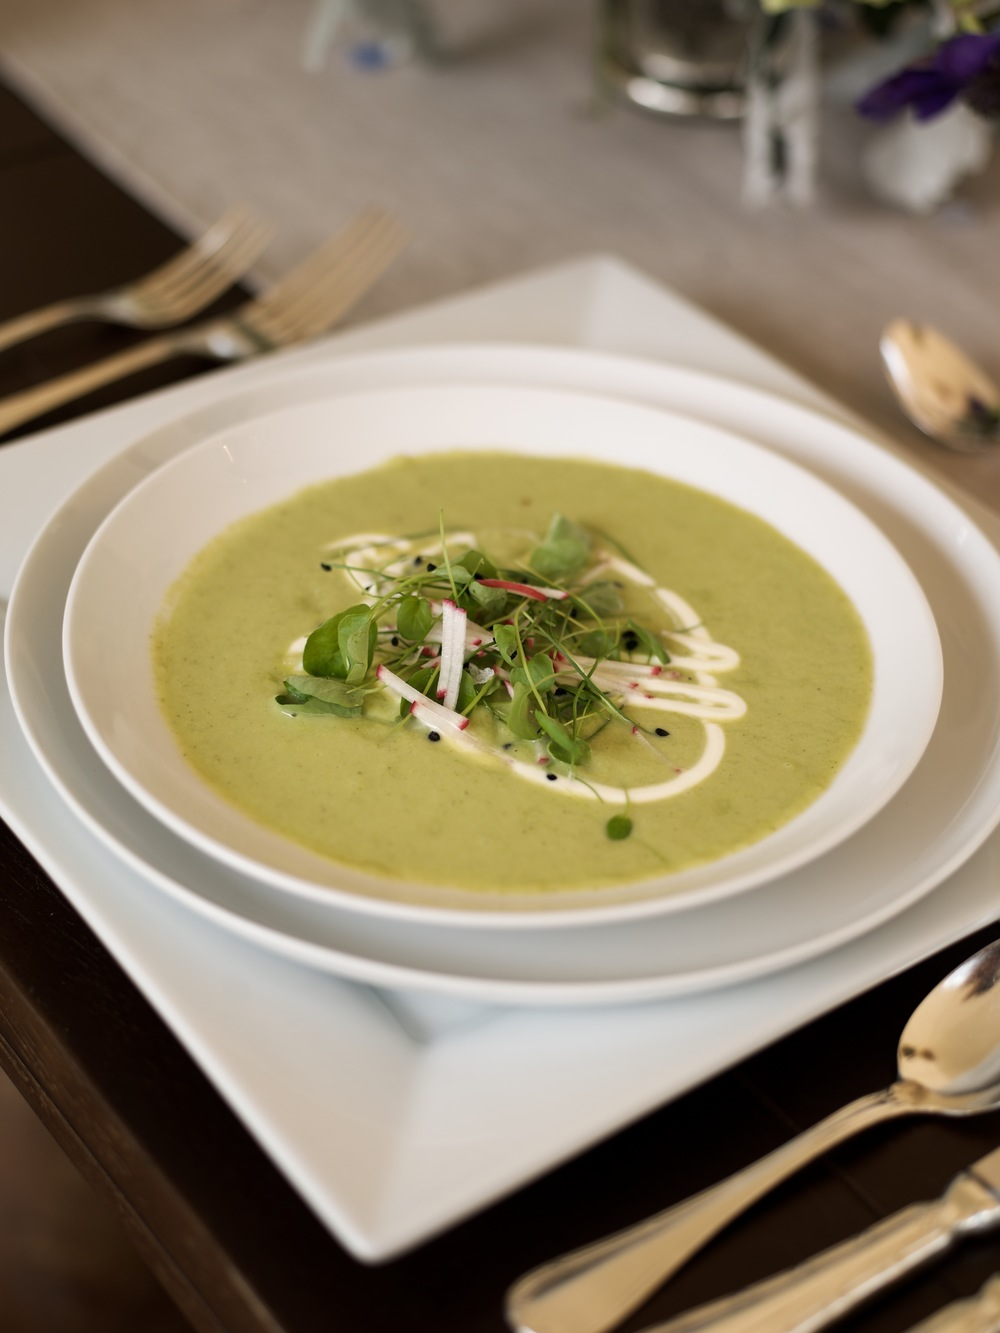 Chilled zucchini soup.